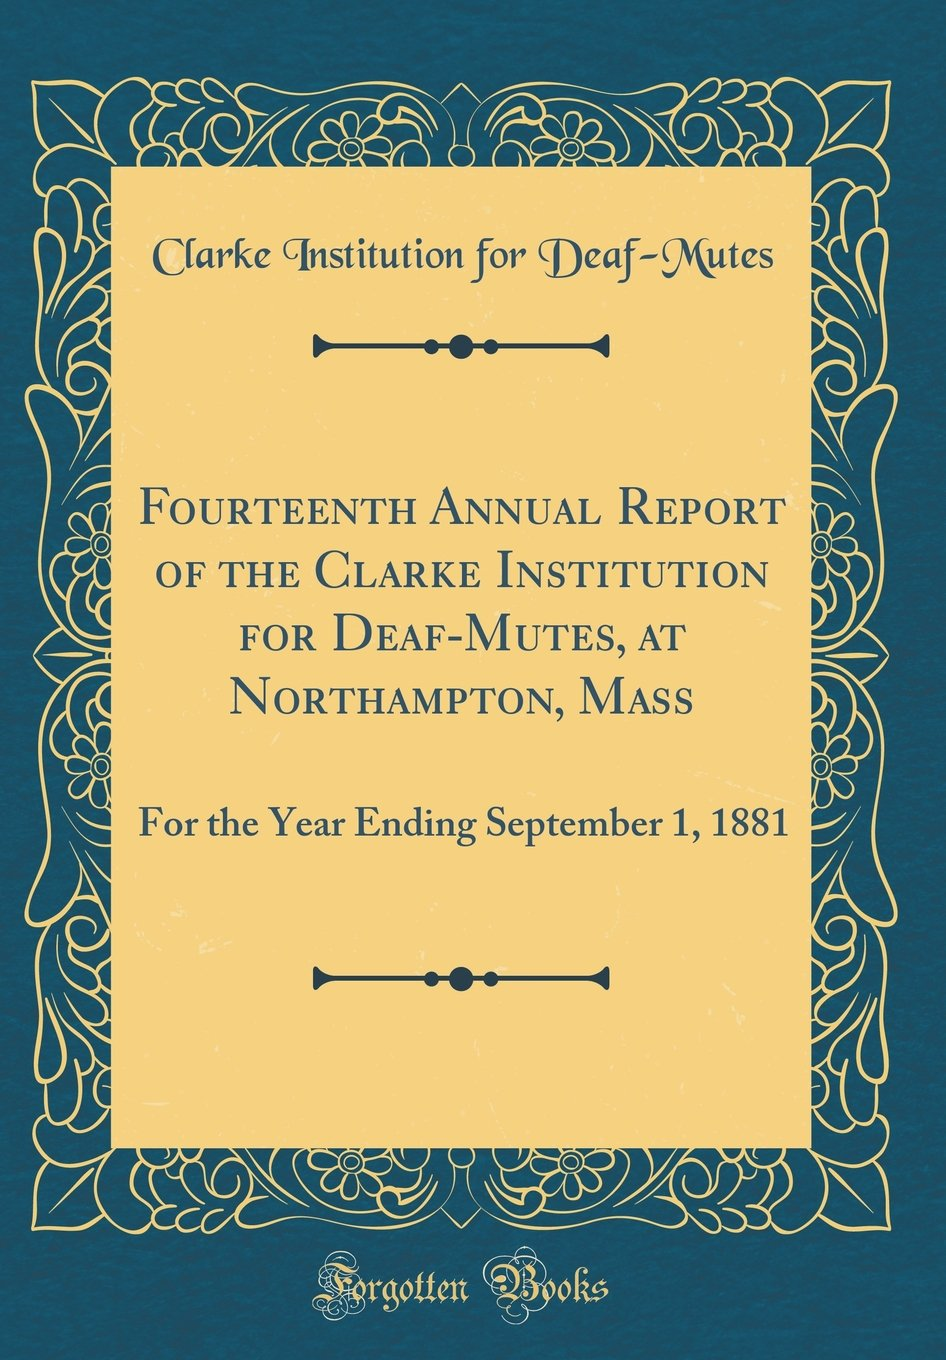 Fourteenth Annual Report of the Clarke Institution for Deaf-Mutes, at Northampton, Mass: For the Year Ending September 1, 1881 (Classic Reprint) pdf